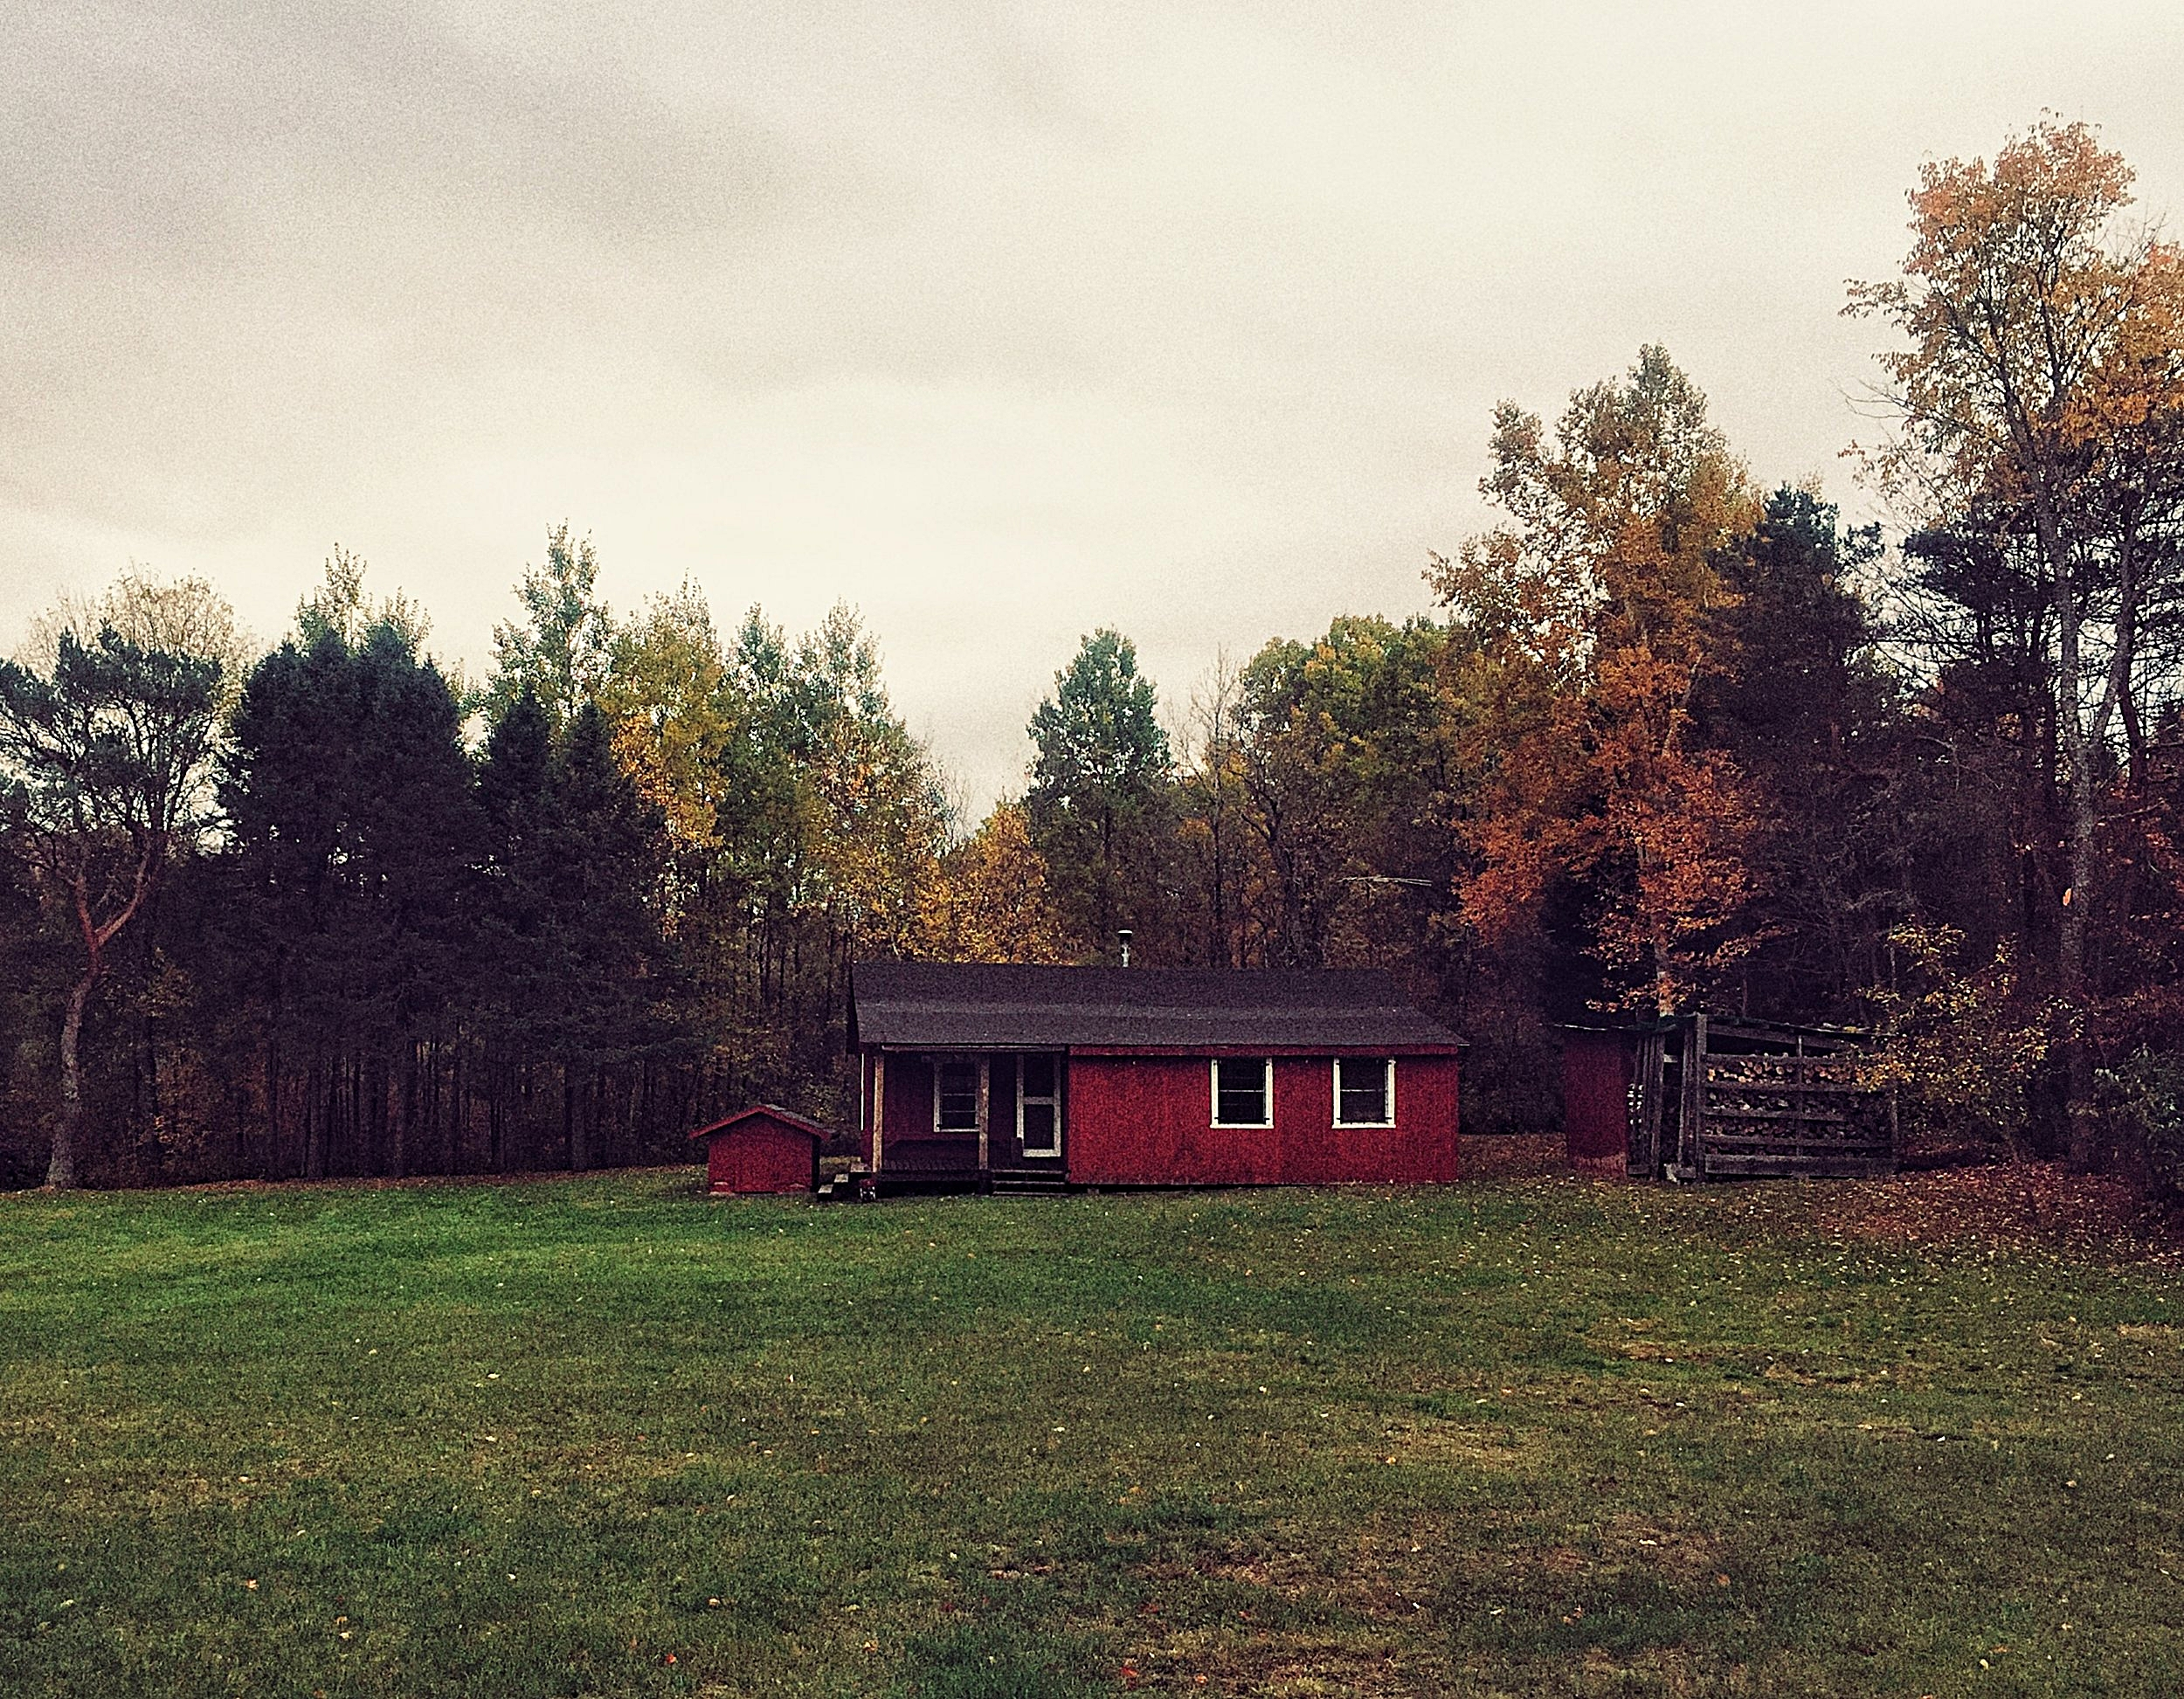 The Doll House in Owls Head, N.Y.,one of the many cabins where Richard Matt and David Sweat stayed during their time on the run. (Chelsia Rose Marcius/October 16, 2016)